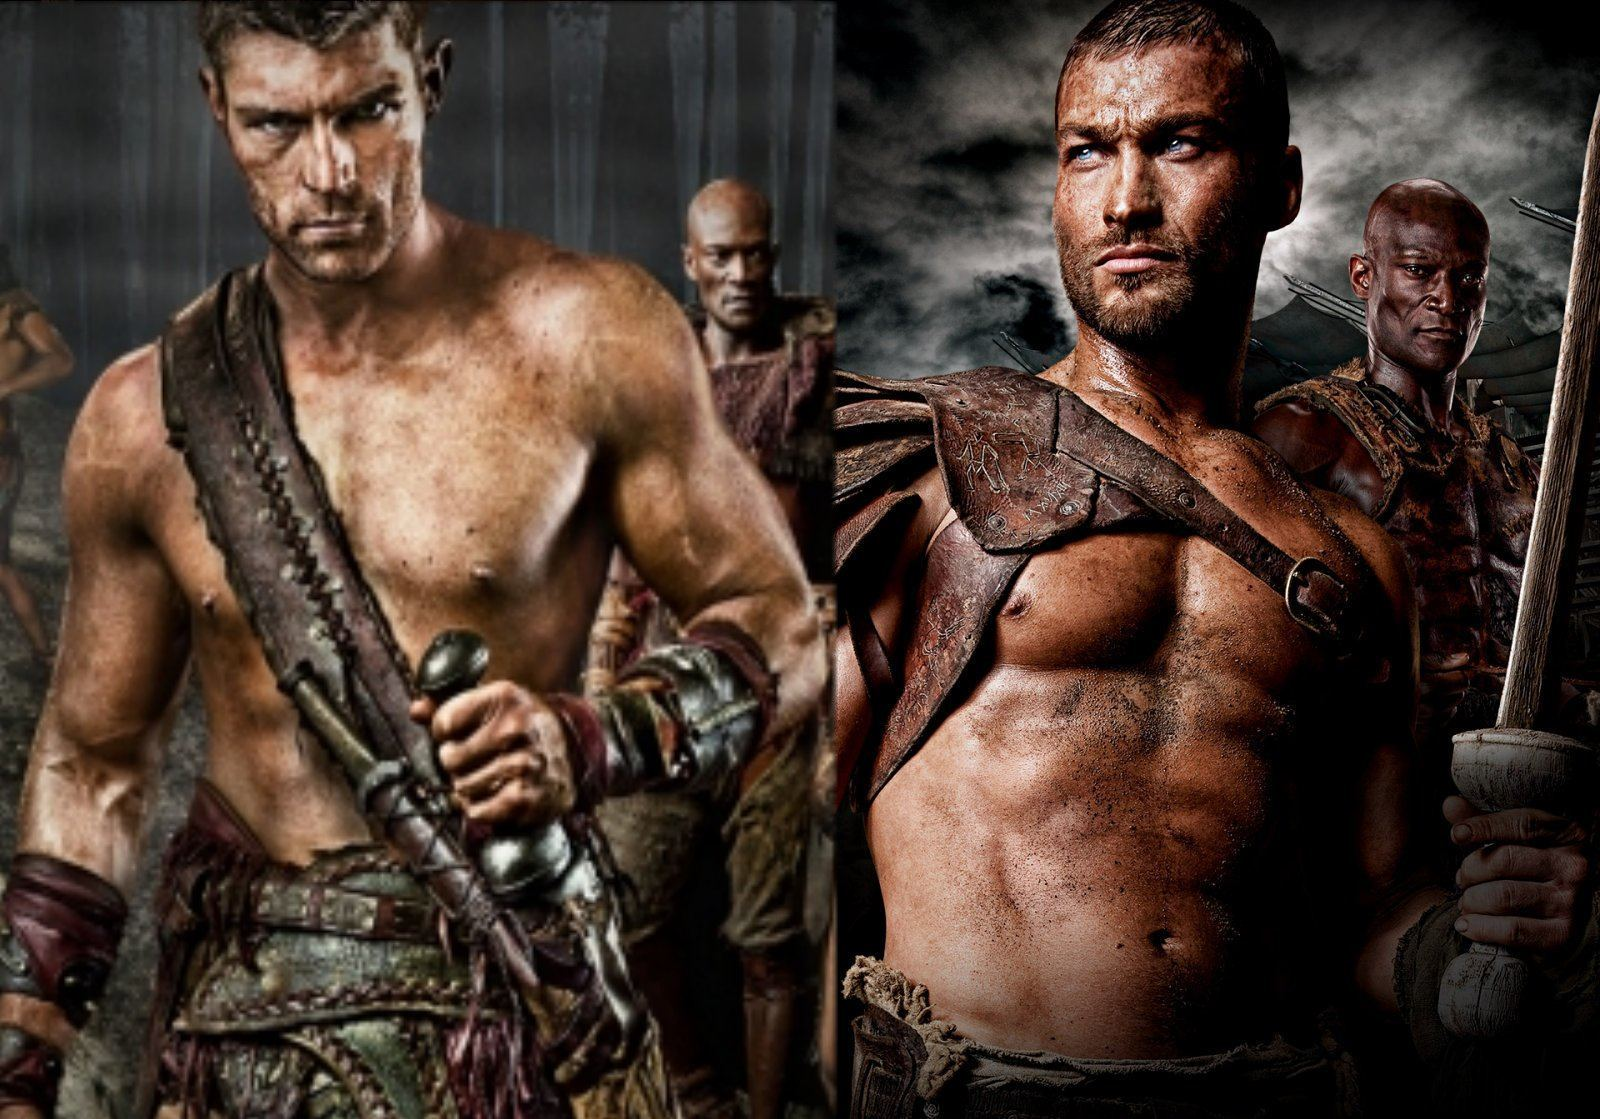 spartacus special edition blu ray set